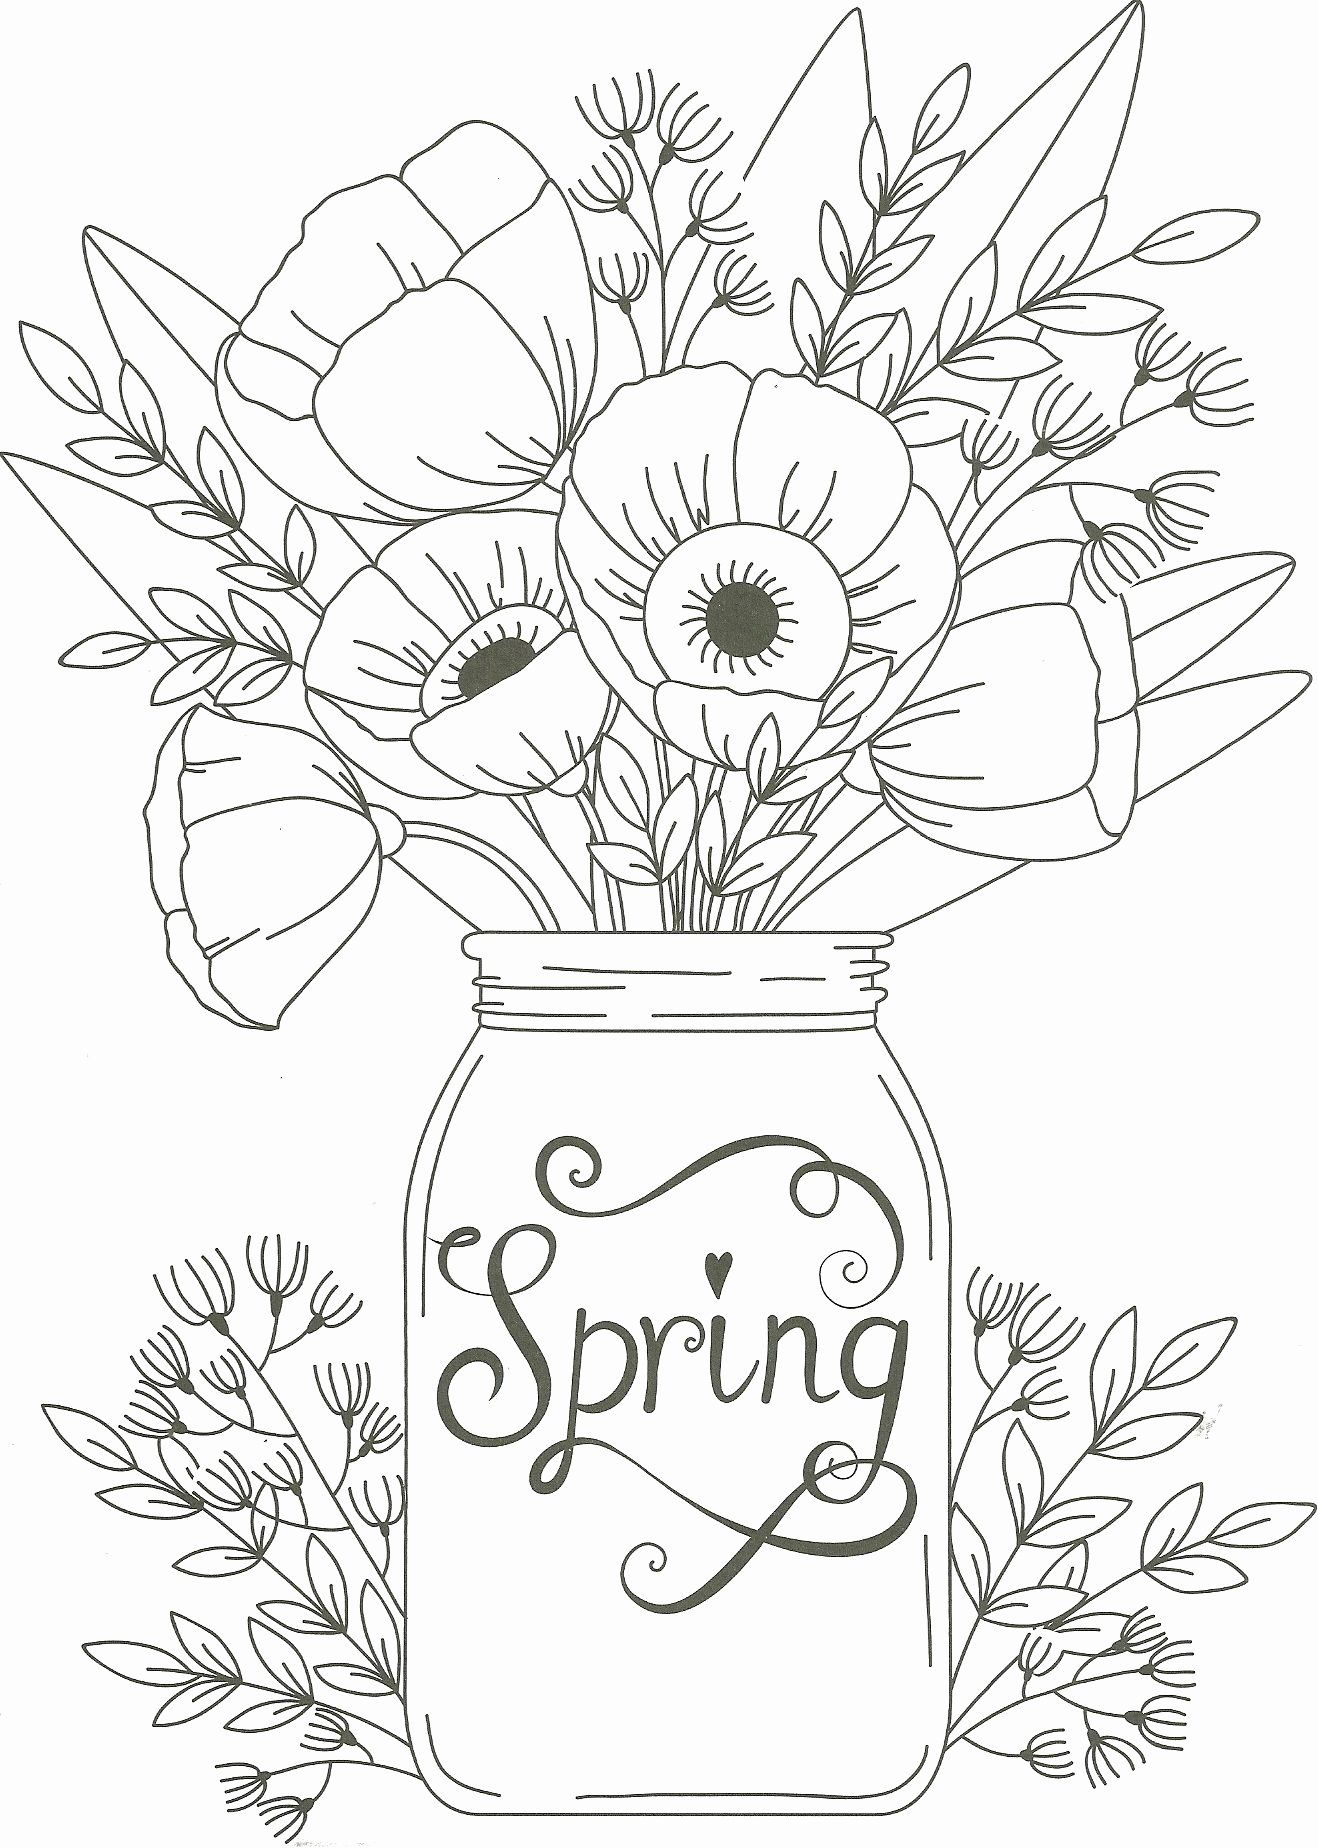 Spring Coloring Sheets For Adults In 2020 Spring Coloring Pages